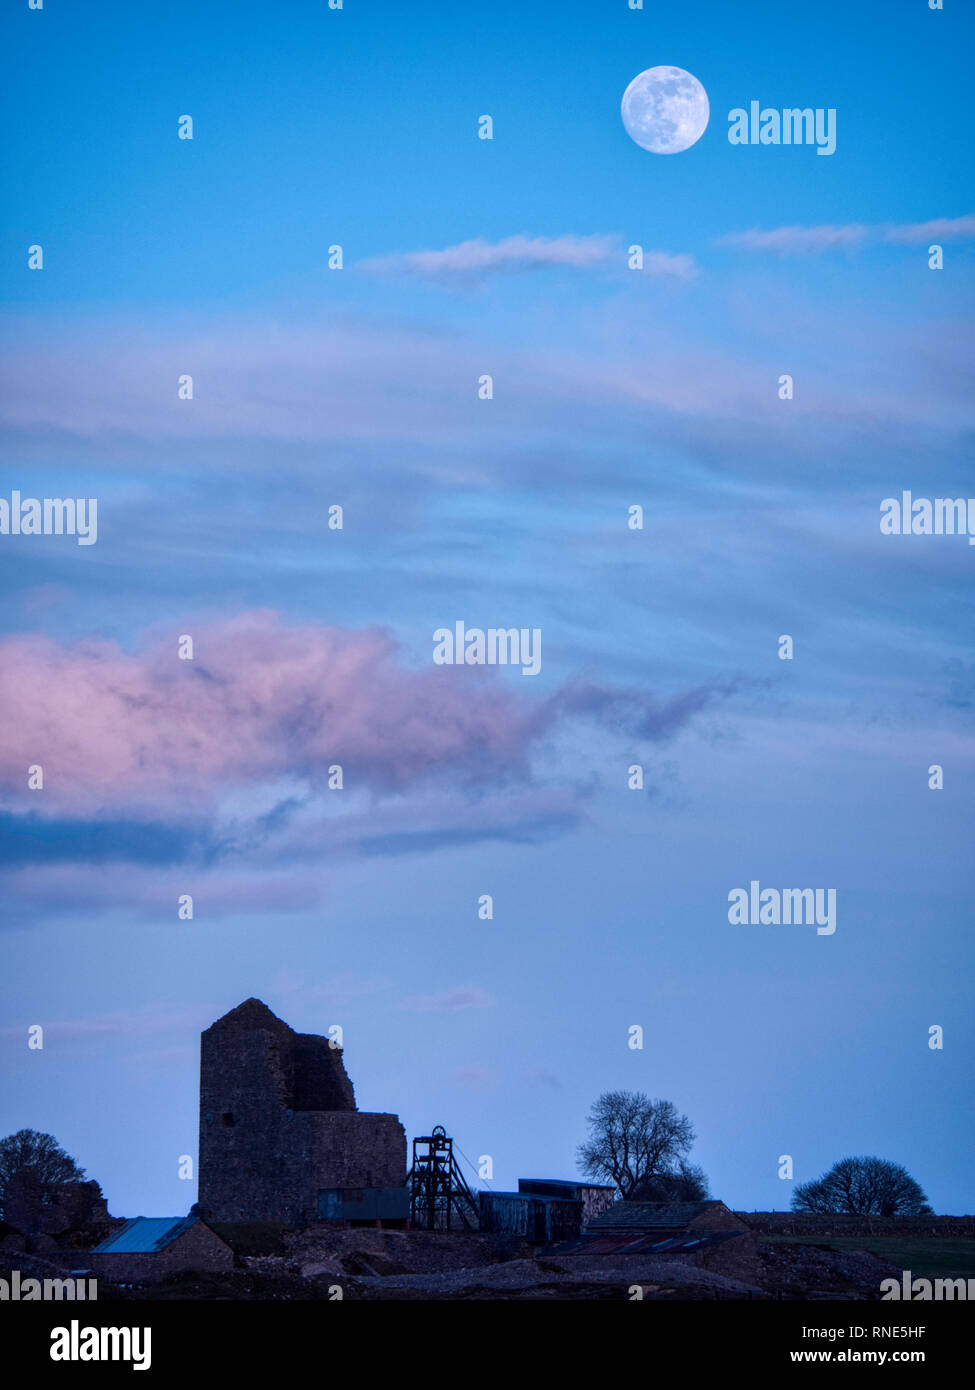 Derbyshire, UK. 18th Feb, 2019. Super Snow Full Moon rising over Magpie Mine historic buildings in the Peak District National Park, Derbyshire. The full moon will reach its closest point to Earth at 9.06 am on Tuesday 19th February 2019. It will be the biggest and brightest of the entire year appearing 14% bigger than usual and 30% brighter. Credit: Doug Blane/Alamy Live News Stock Photo